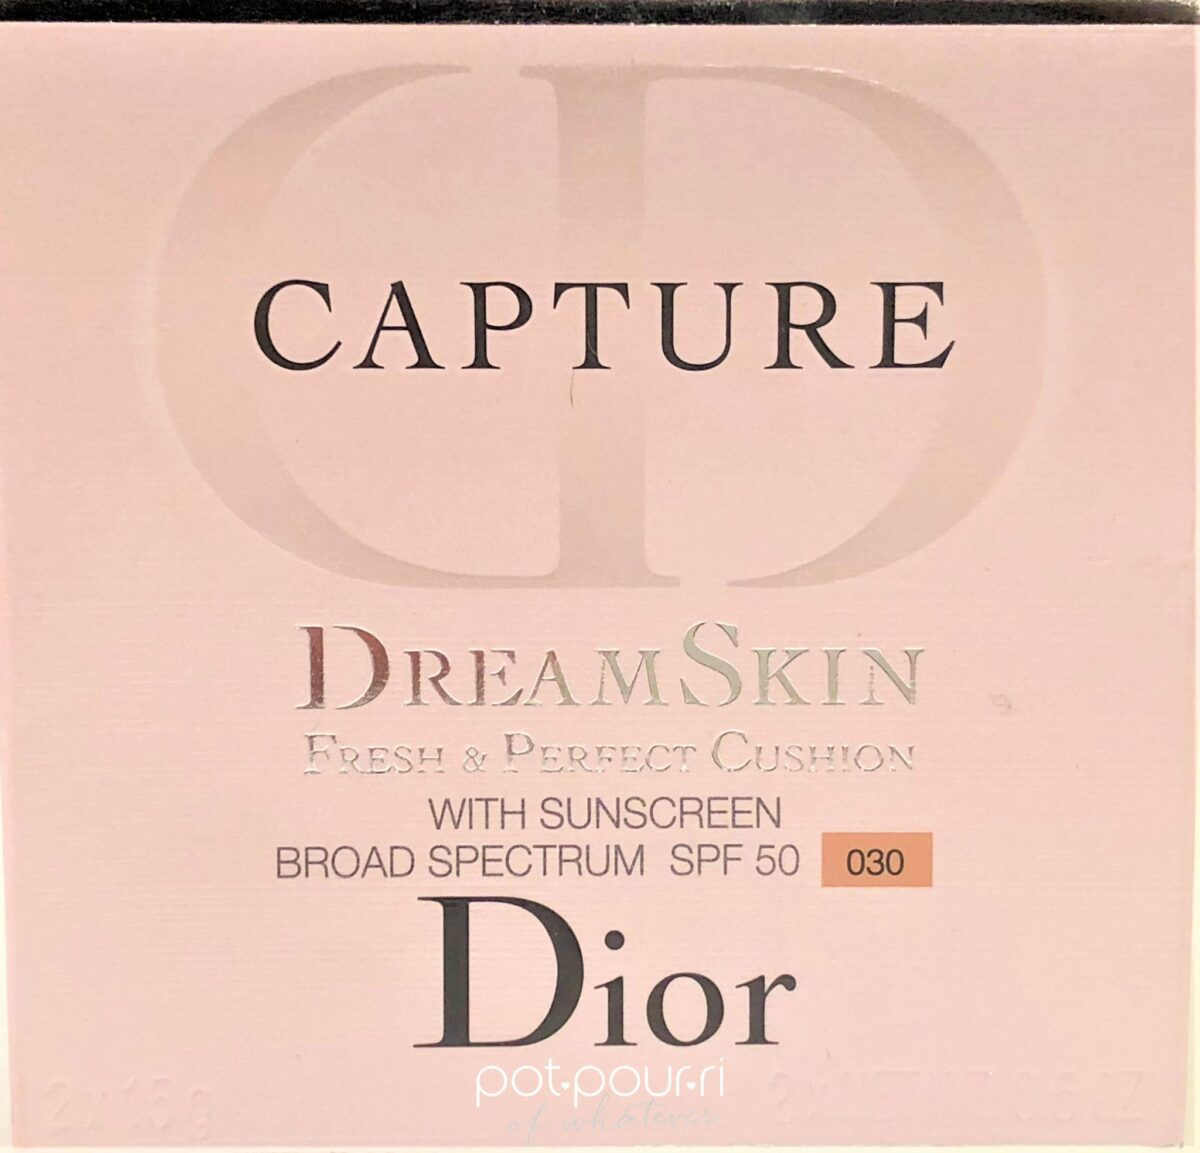 PACKAGING FOR DIOR CAPTURE DREAM SKIN CUSHION